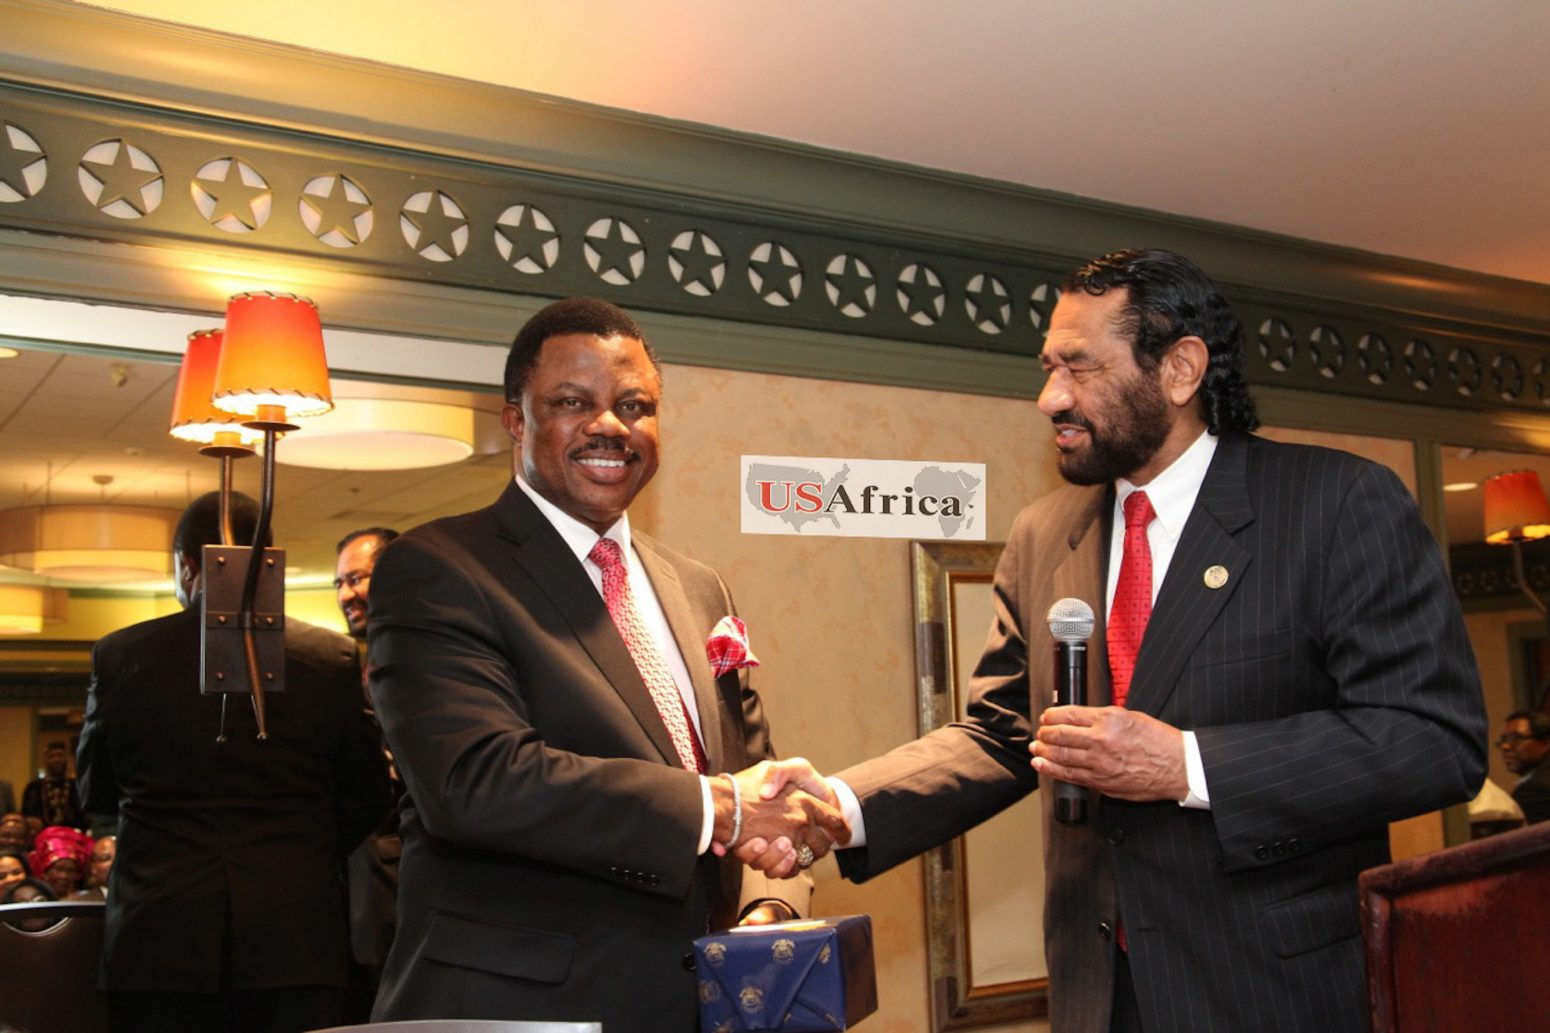 U.S Congressman Green congratulates Anambra Gov-elect Obiano at USAfrica interactive forum in Houston with Anambra diaspora